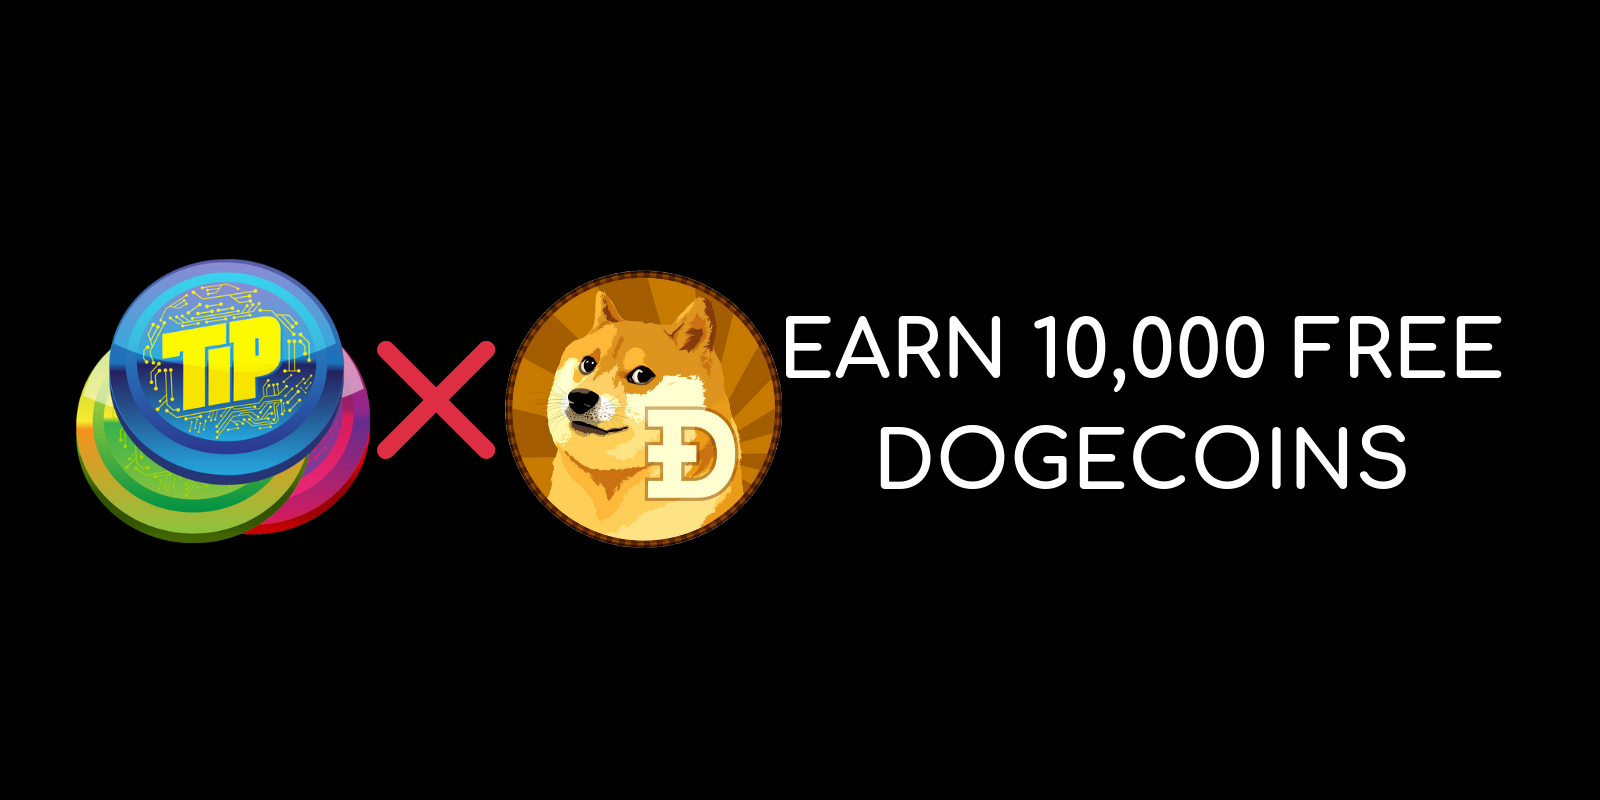 How to earn 10,000 Dogecoins for free? — TIPESTRY! - When Moon, When